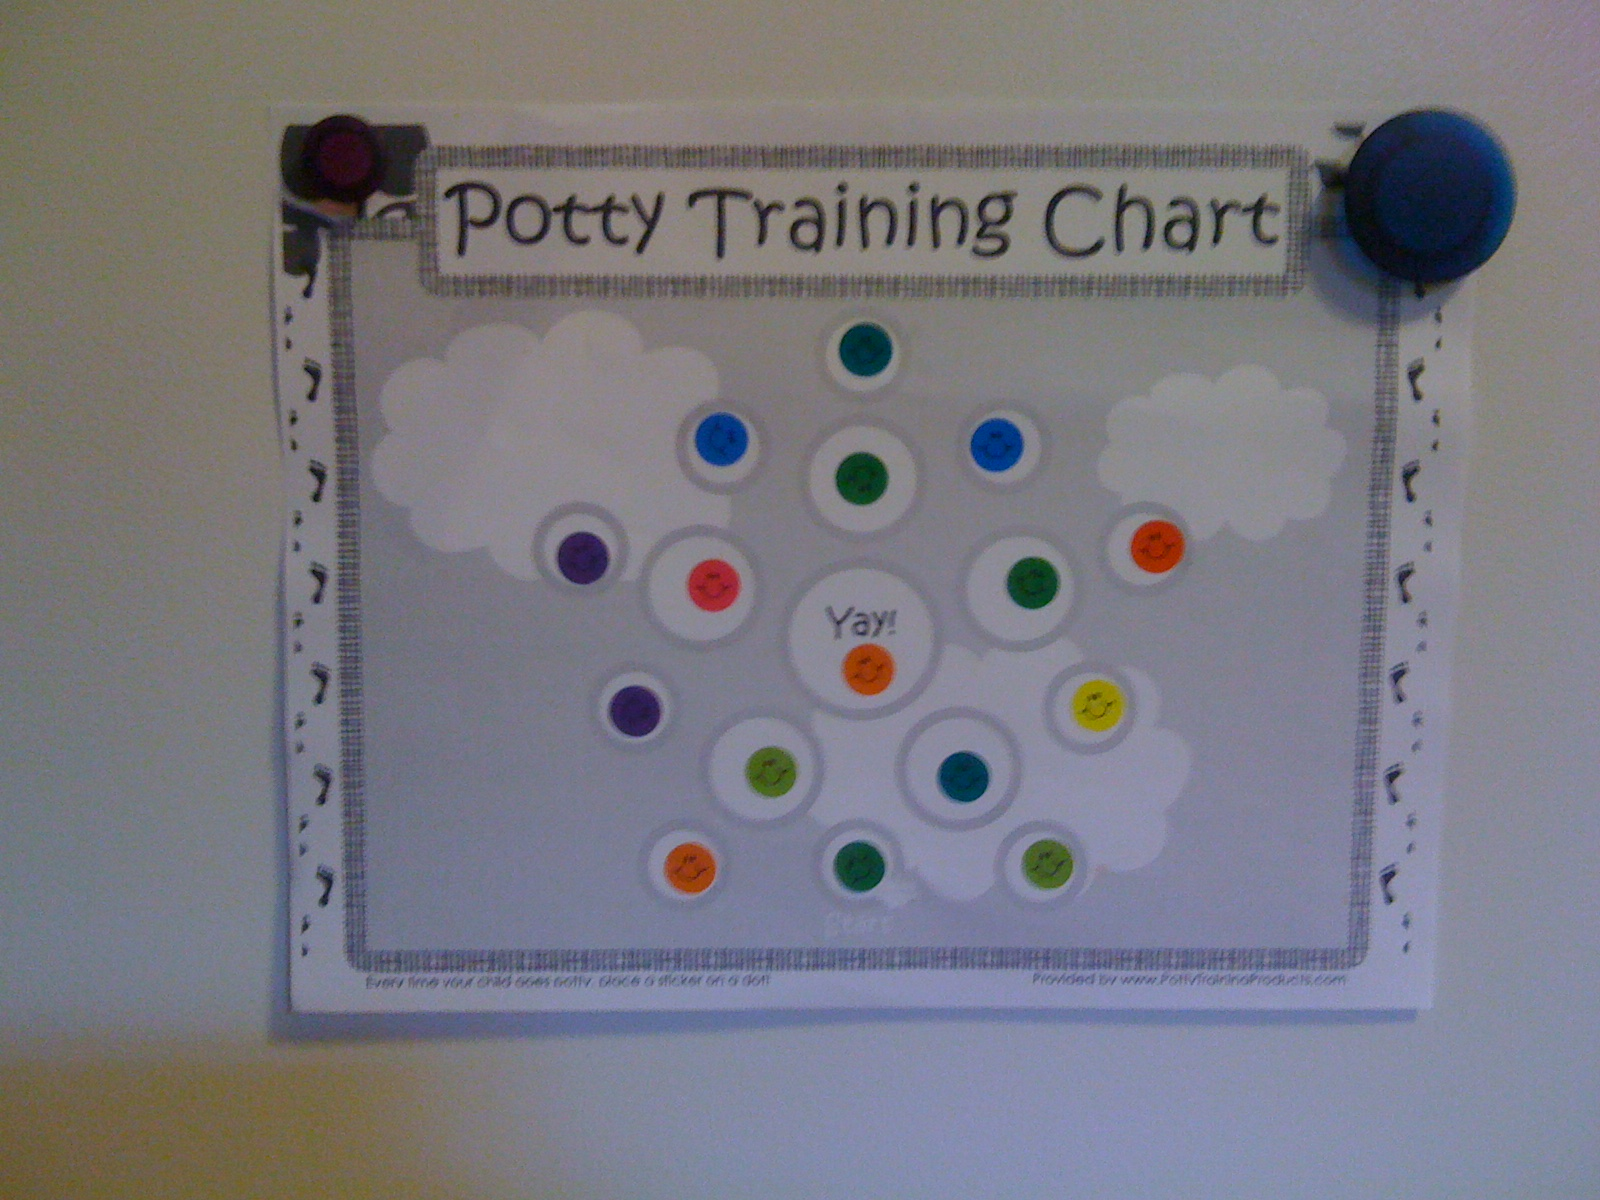 Mum In Translation Days Potty Training Live - Pointing To